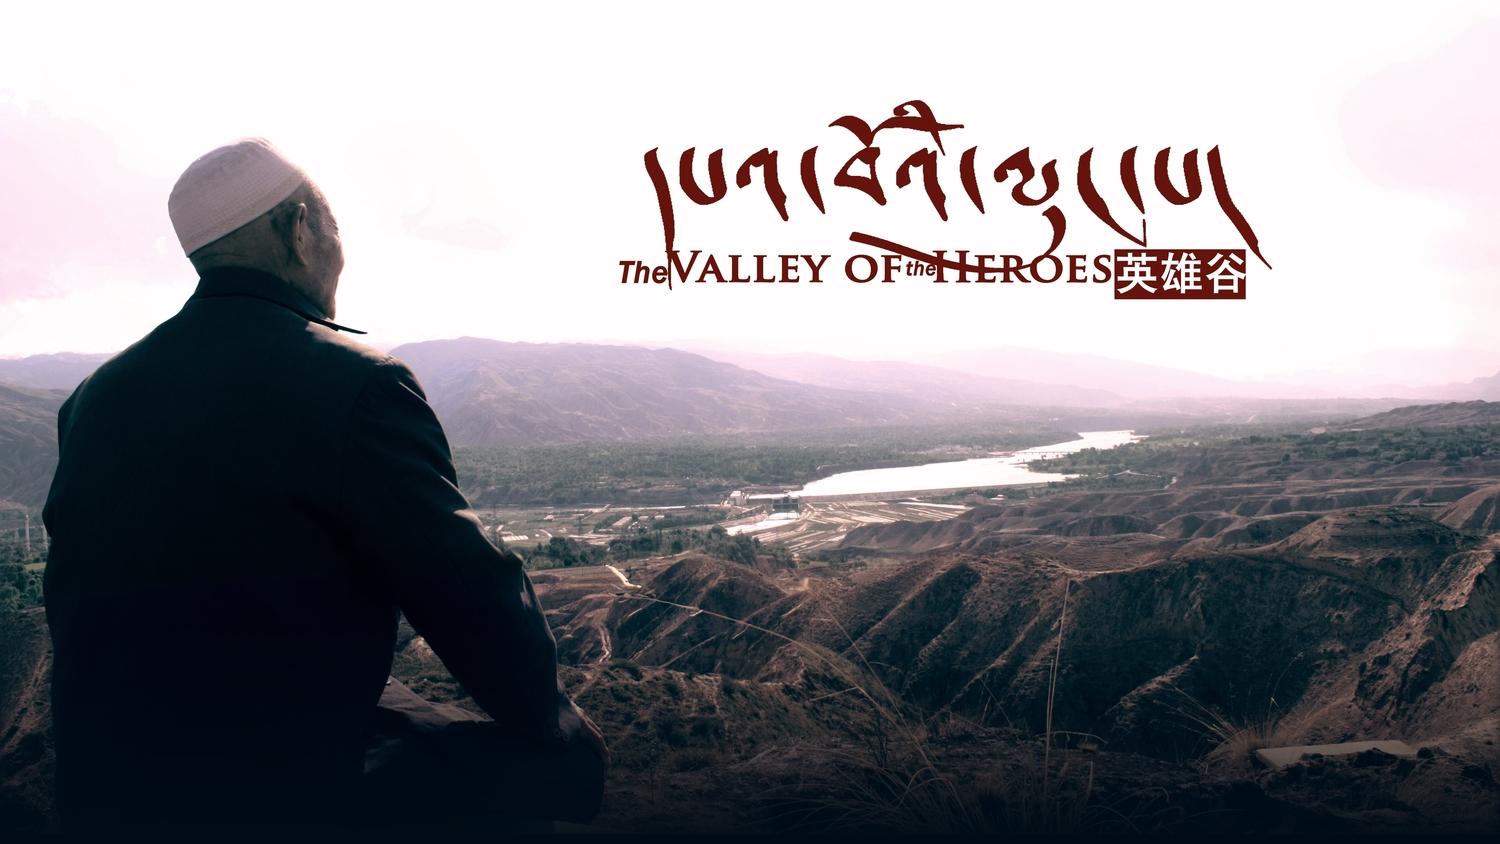 Valley of the Heroes